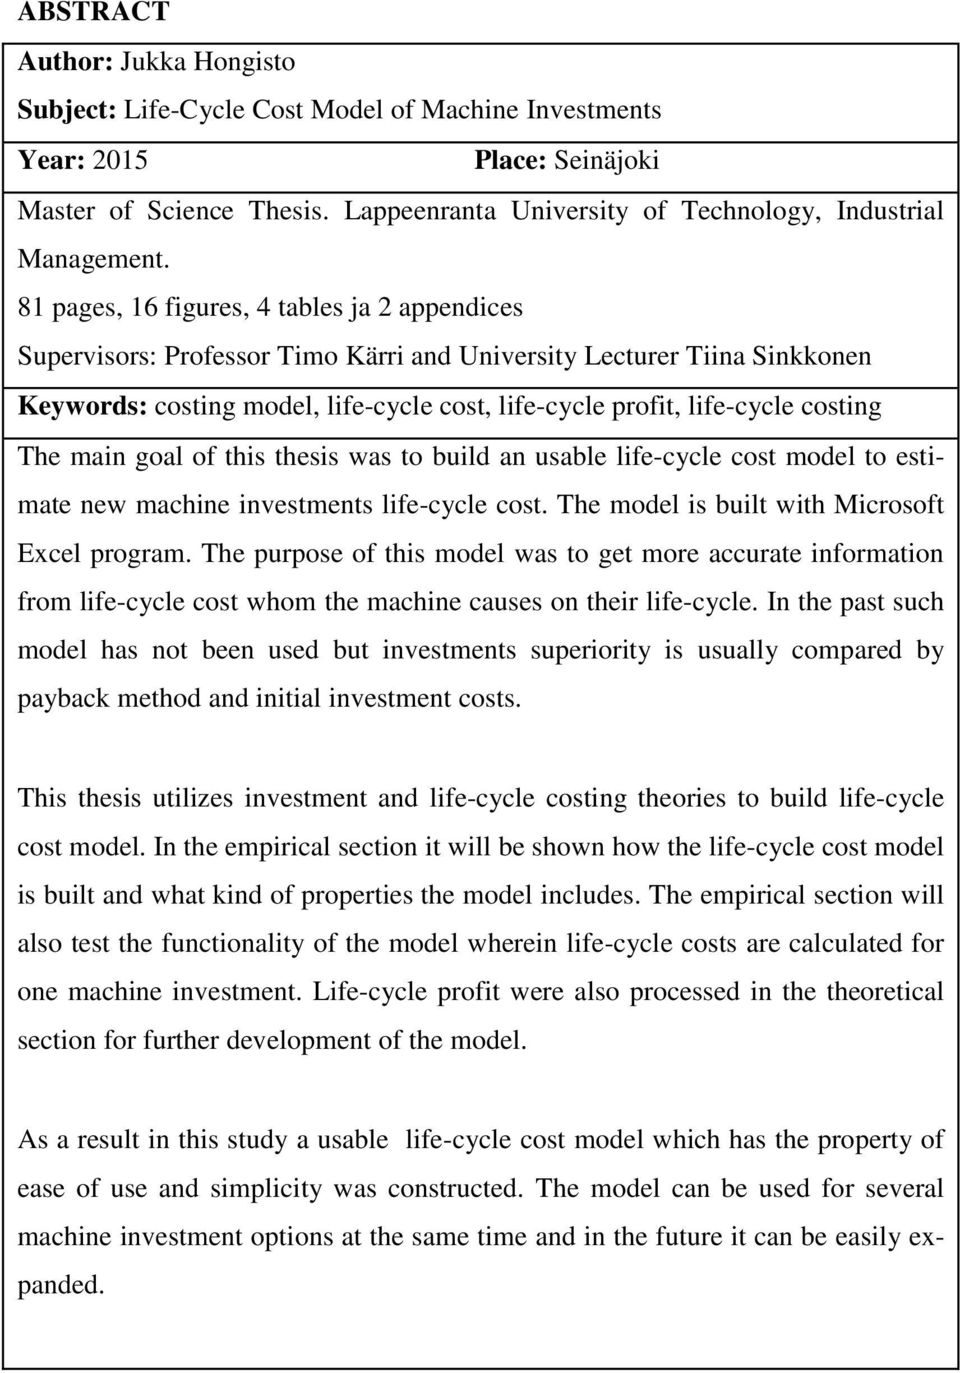 81 pages, 16 figures, 4 tables ja 2 appendices Supervisors: Professor Timo Kärri and University Lecturer Tiina Sinkkonen Keywords: costing model, life-cycle cost, life-cycle profit, life-cycle